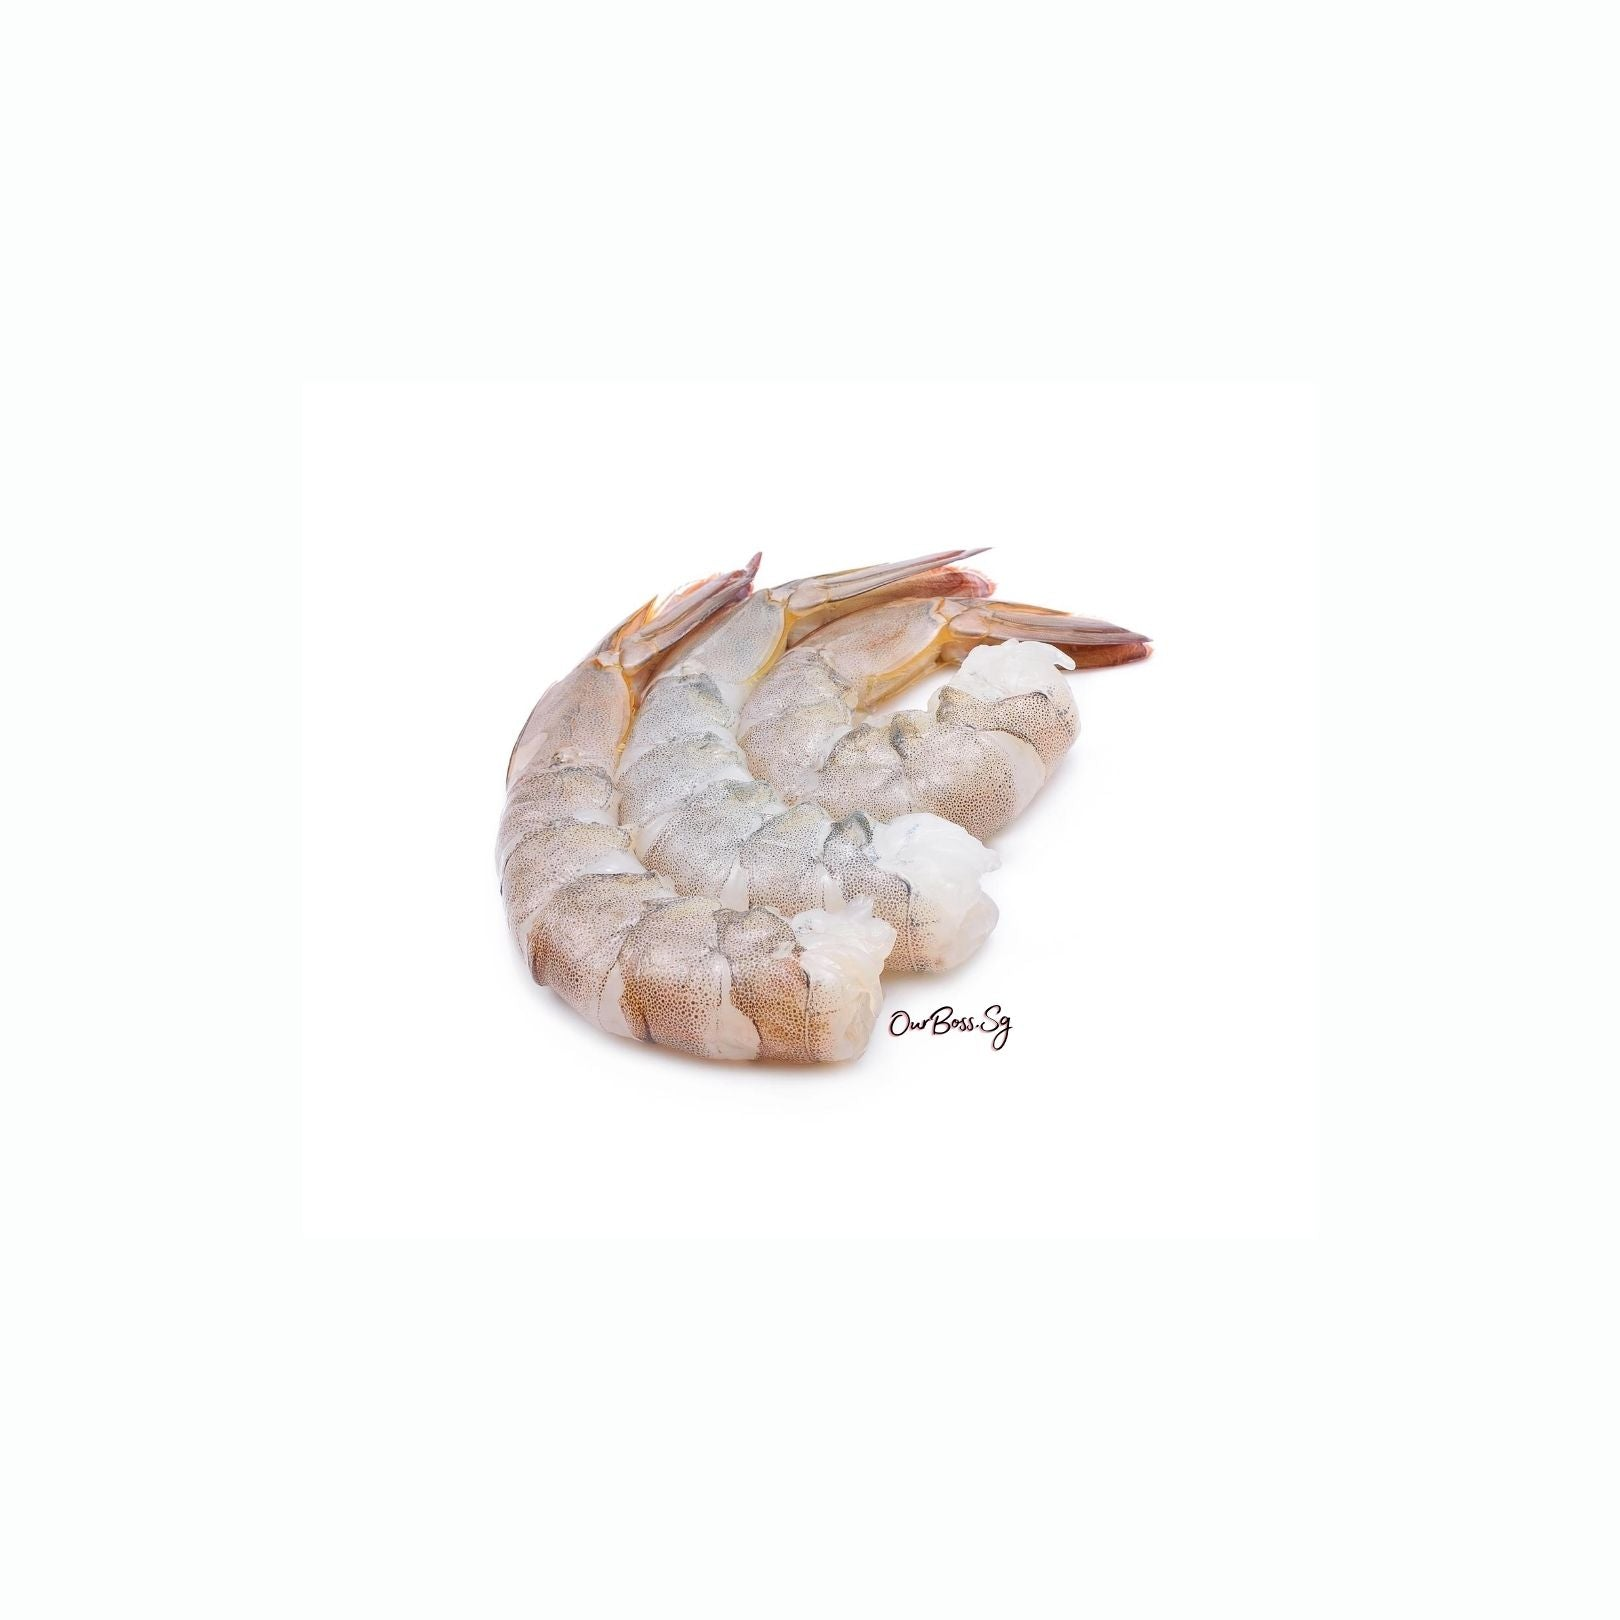 51/60 Prawn (with tail) 1kg